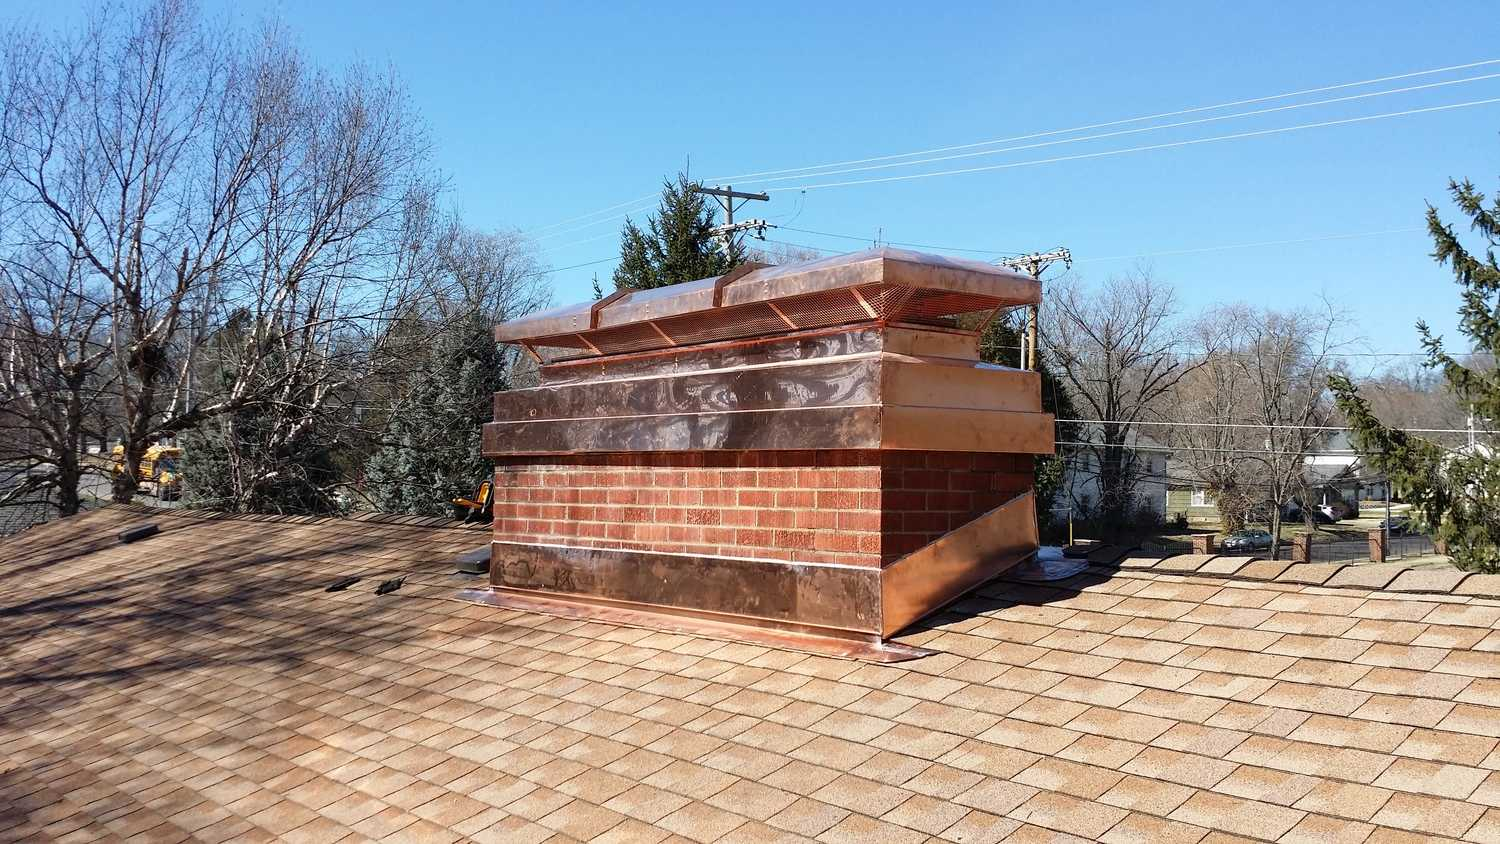 Custom Chimney caps by Accurate Heating & Cooling in Columbia, Mo. Call today for an estimate!